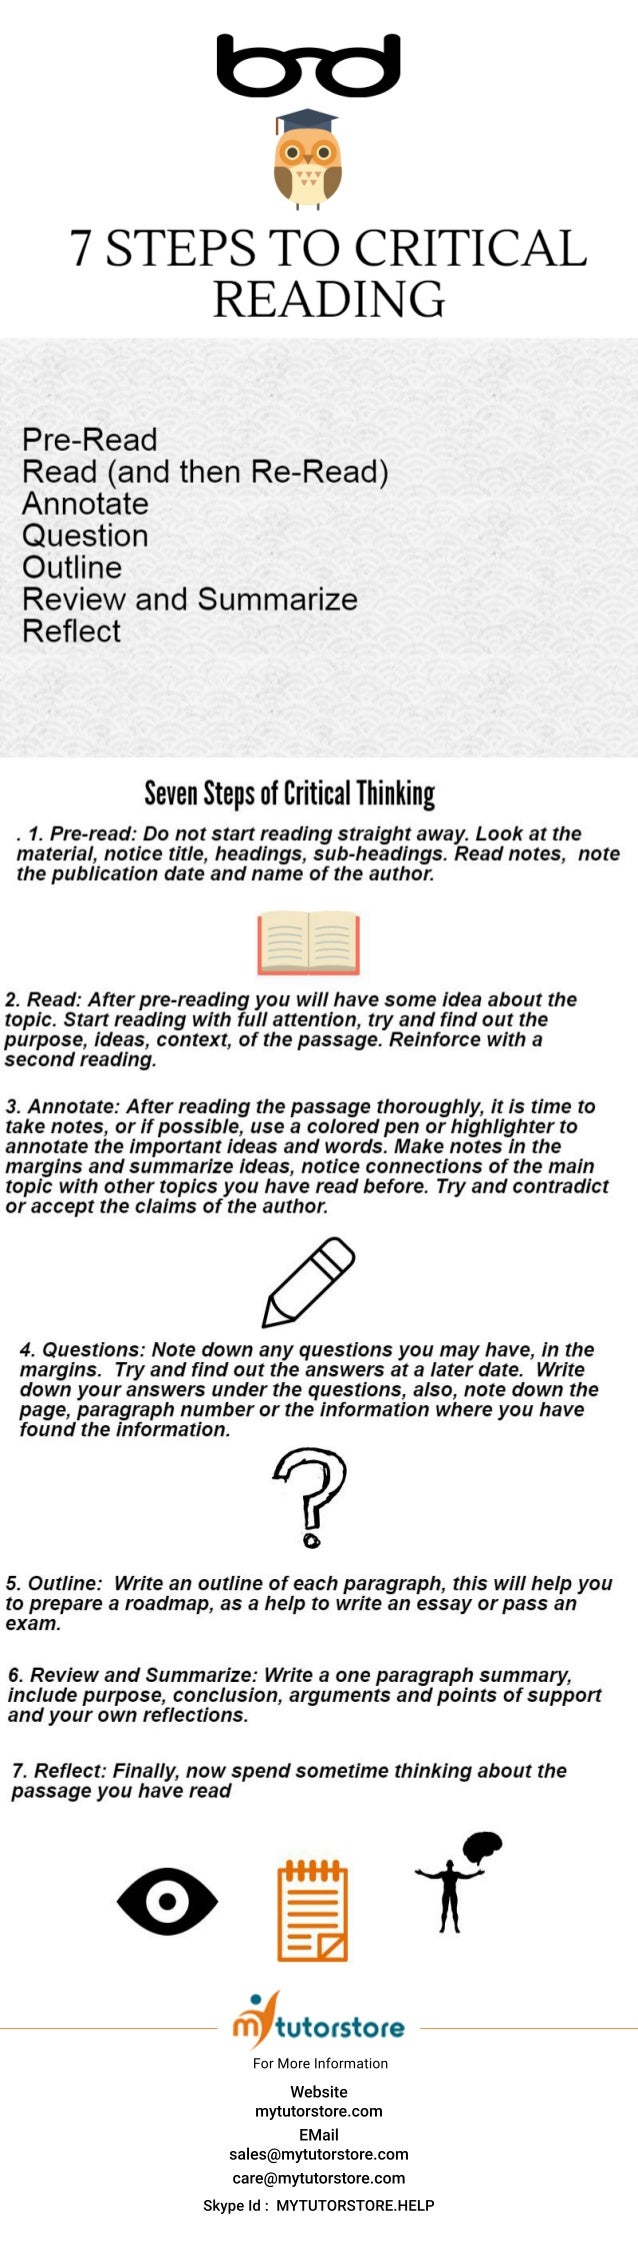 steps to critical reading 7 steps to critical reading website mytutorstore com email s mytutorstore com care mytutorstore com skypeid